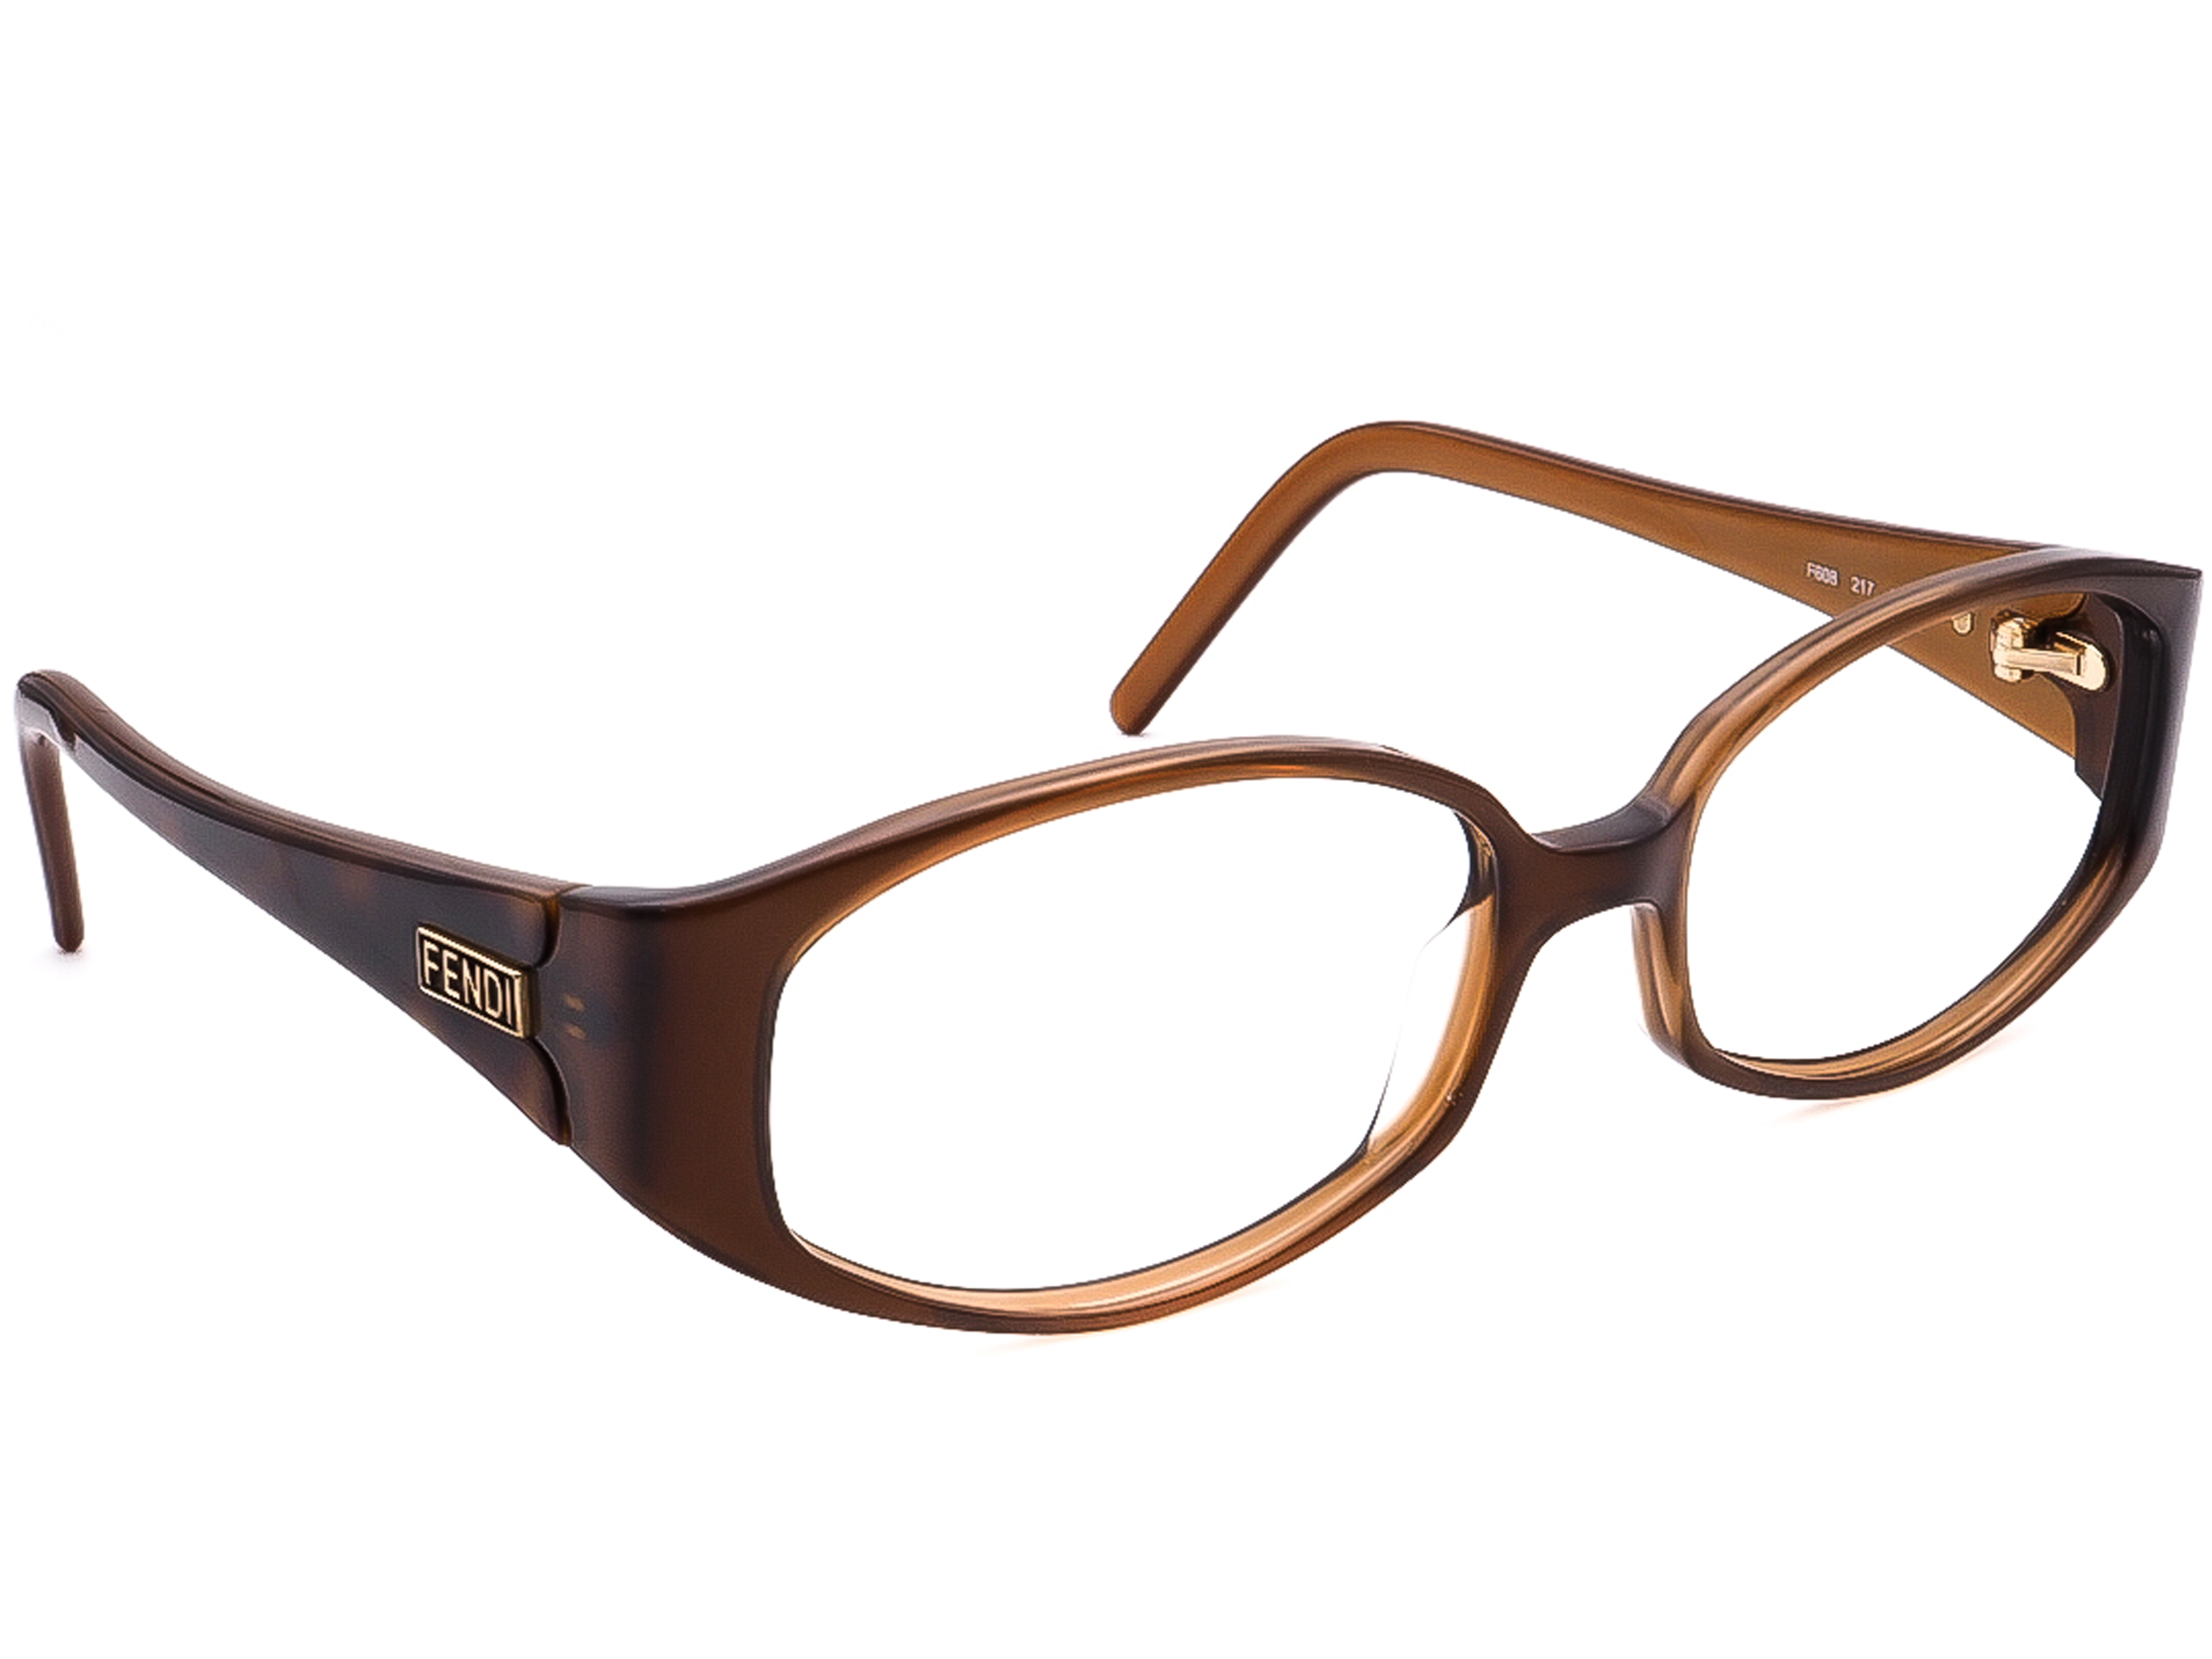 Fendi F608 217 Eyeglasses